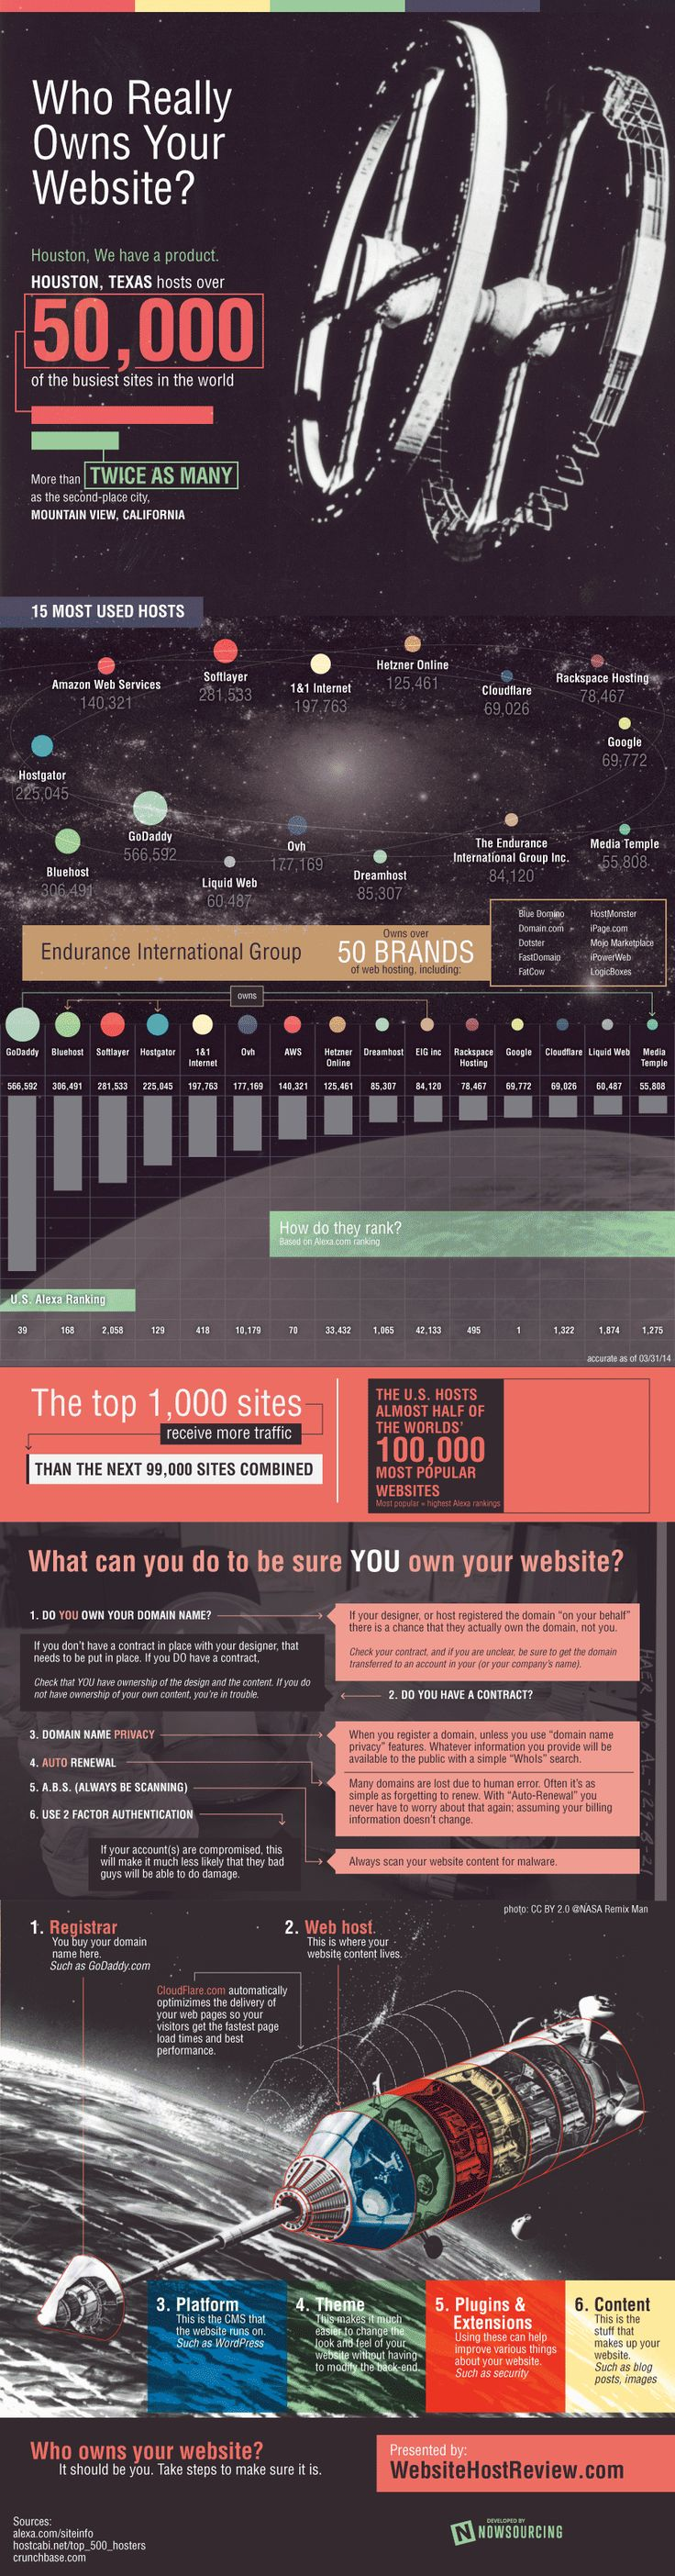 Who Really Owns Your Website?  #Infographic #website